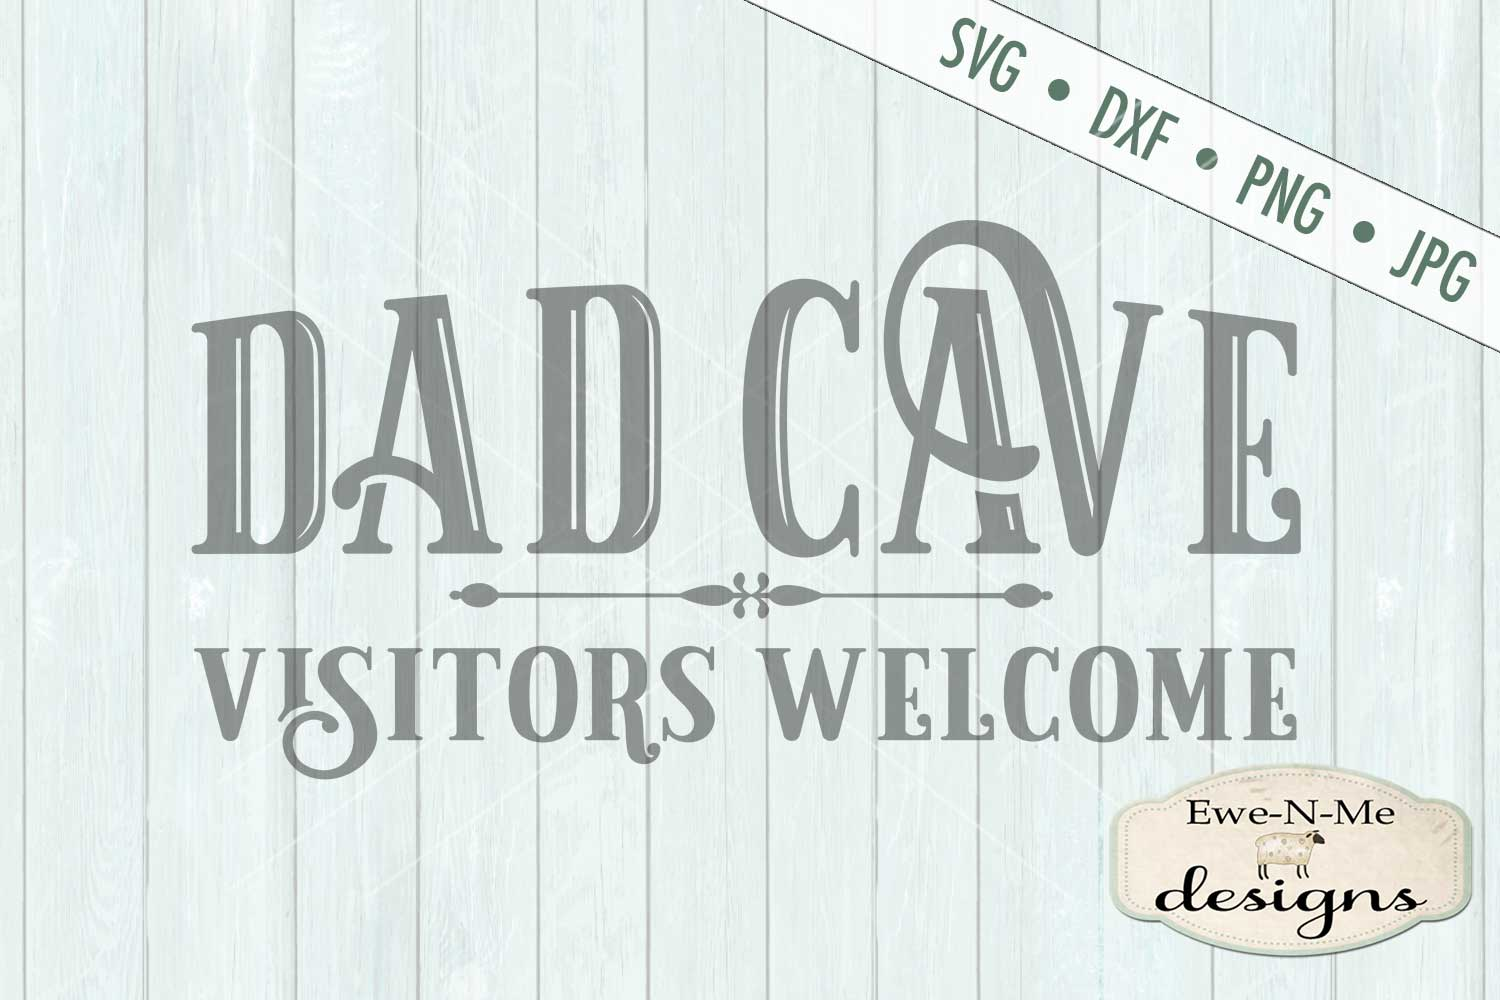 Dad Cave Father's Day SVG DXF Cut File example image 2